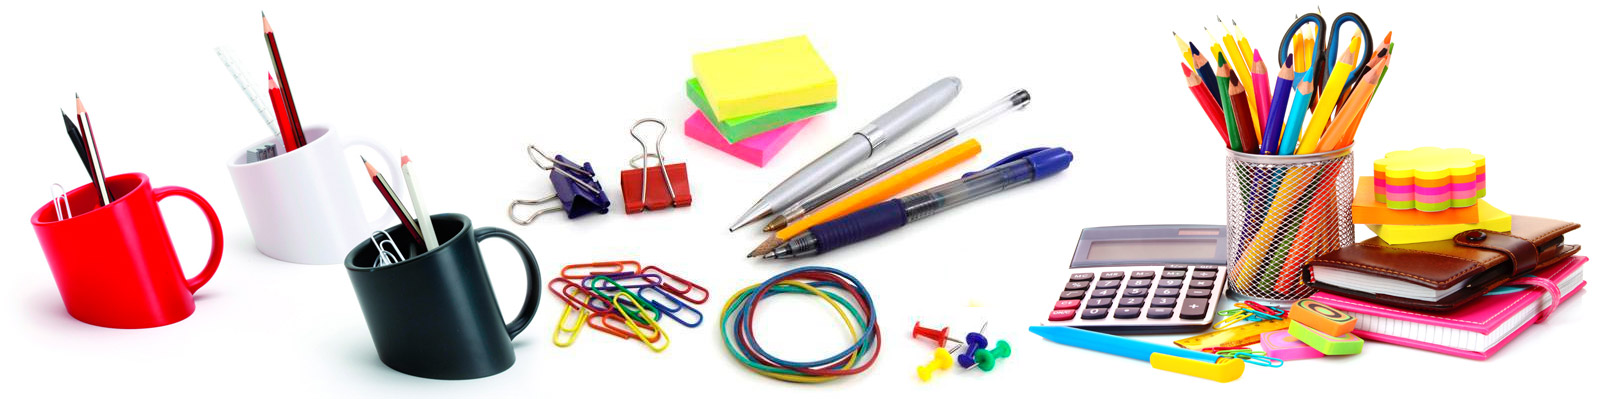 stationary items 1